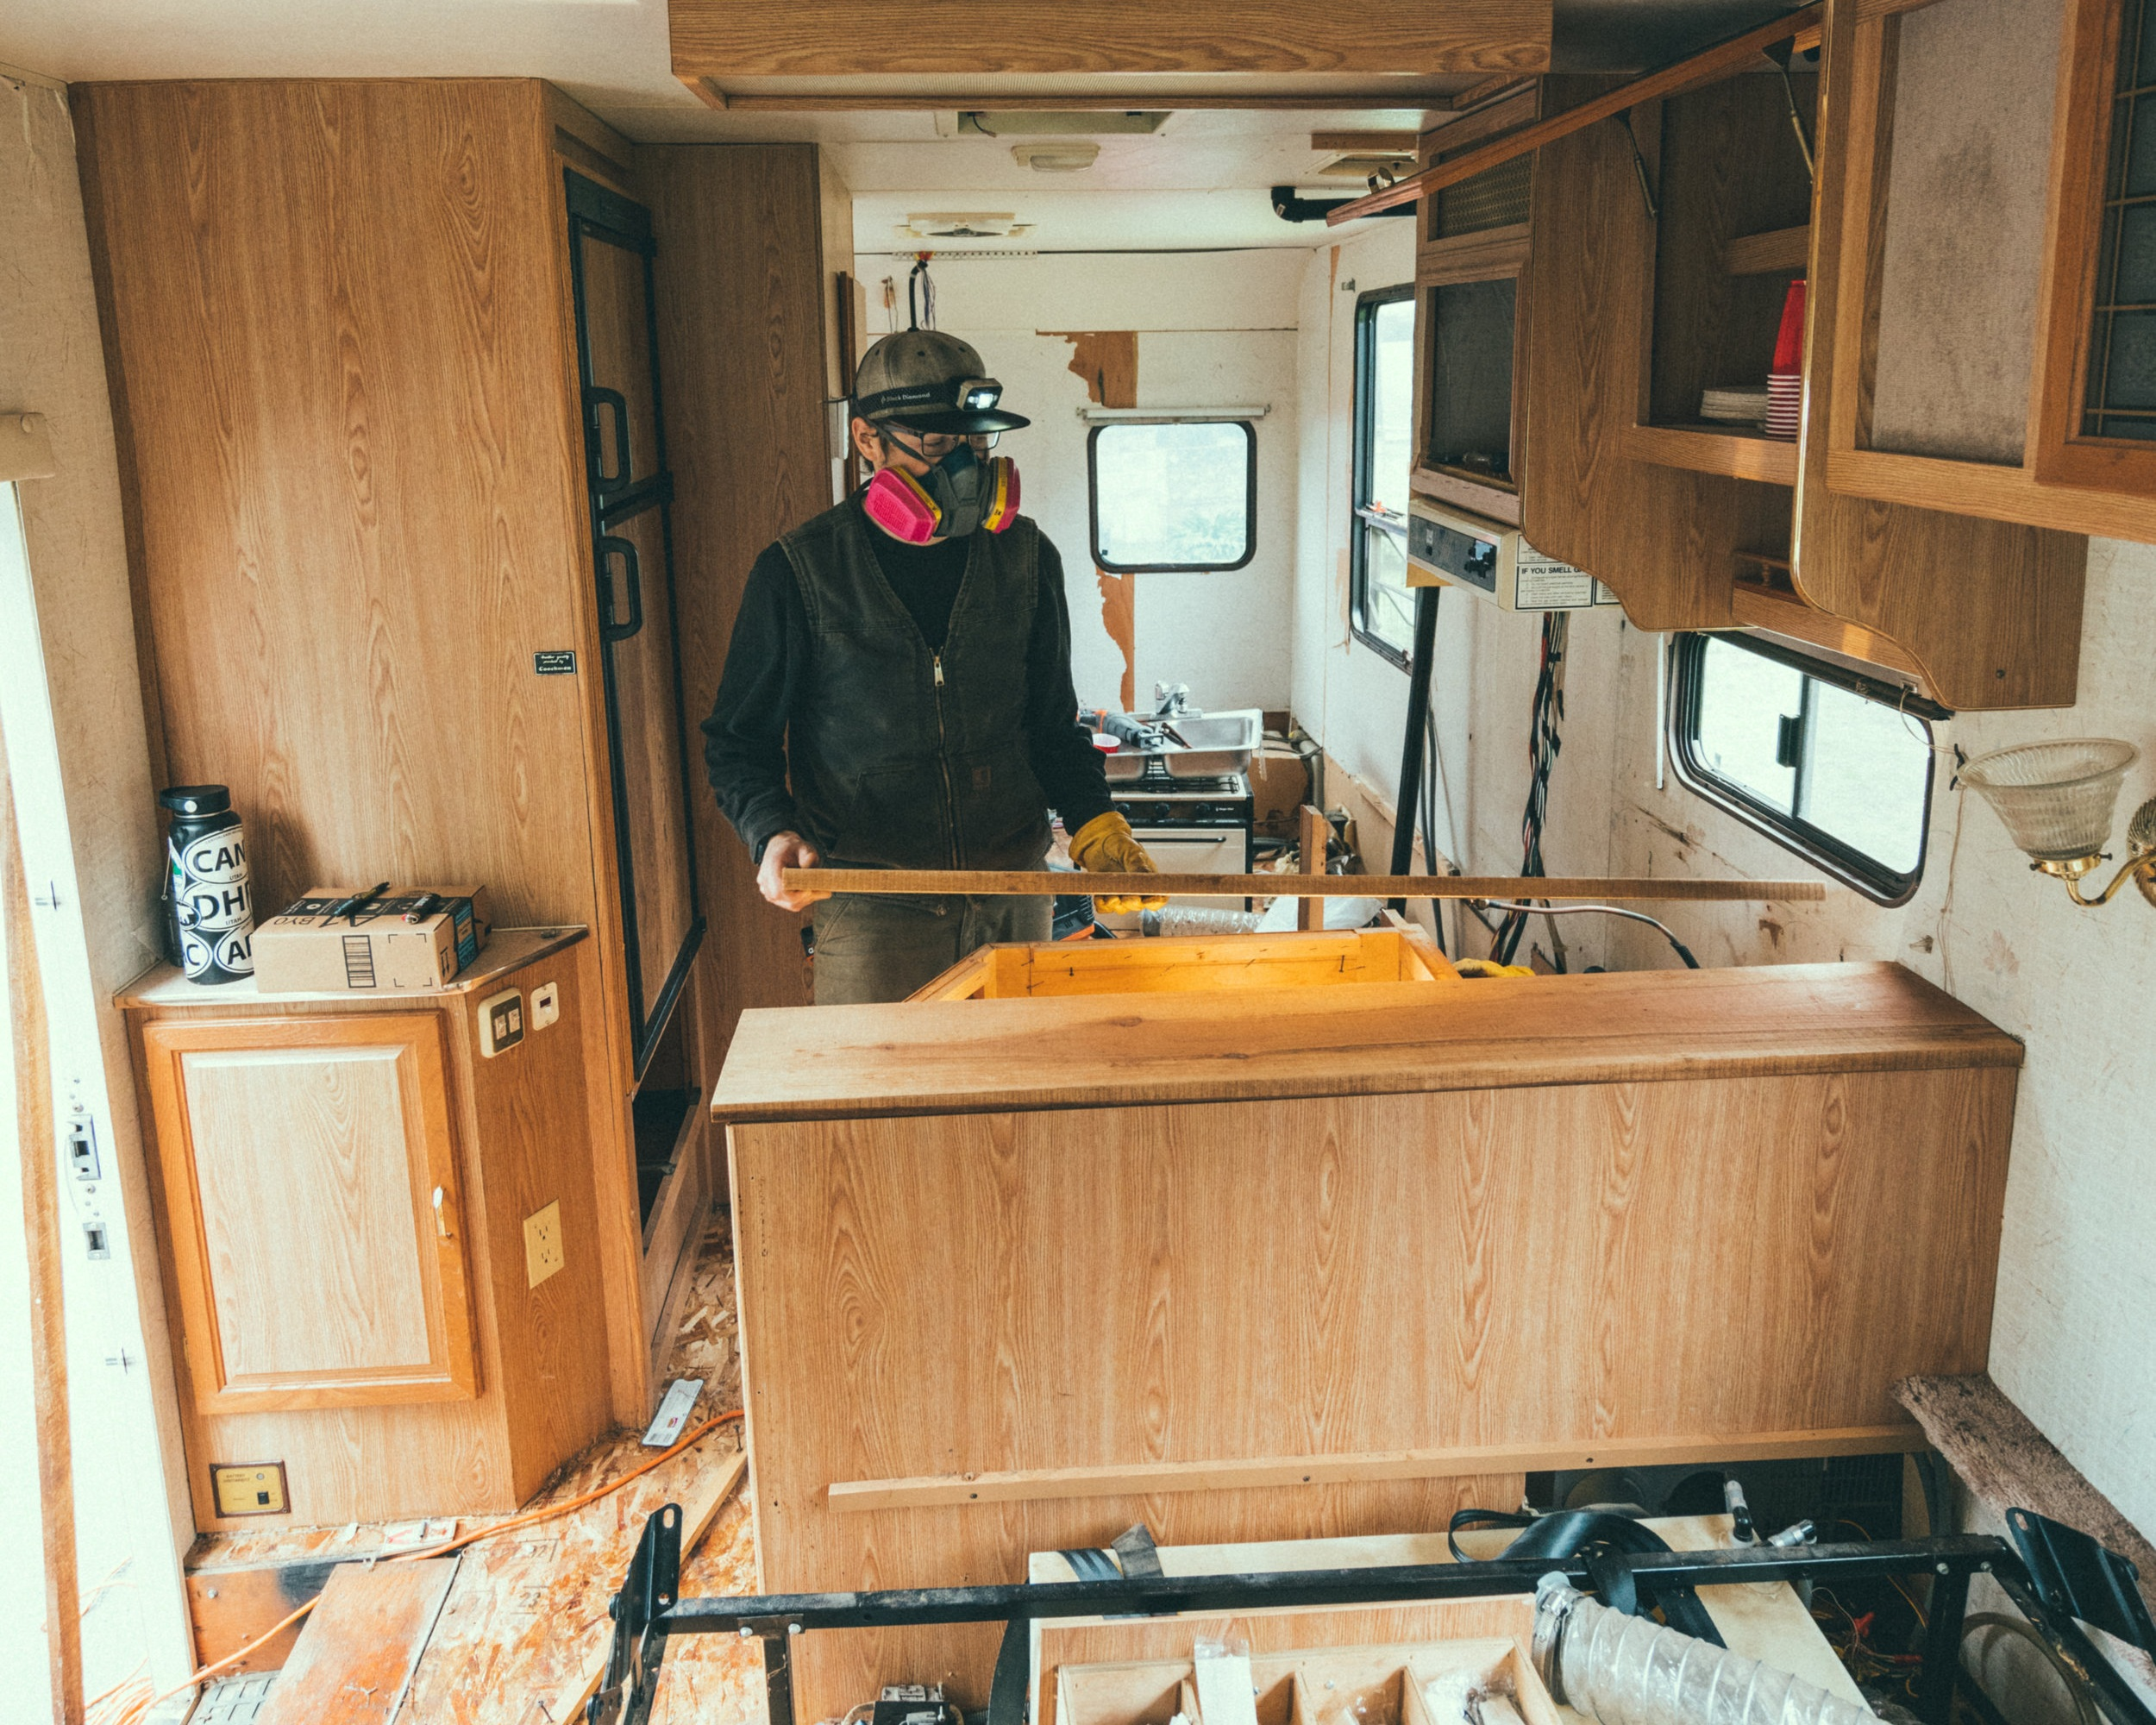 Josh Building the Studio - Josh spent an entire month designing and building our studio on wheels.